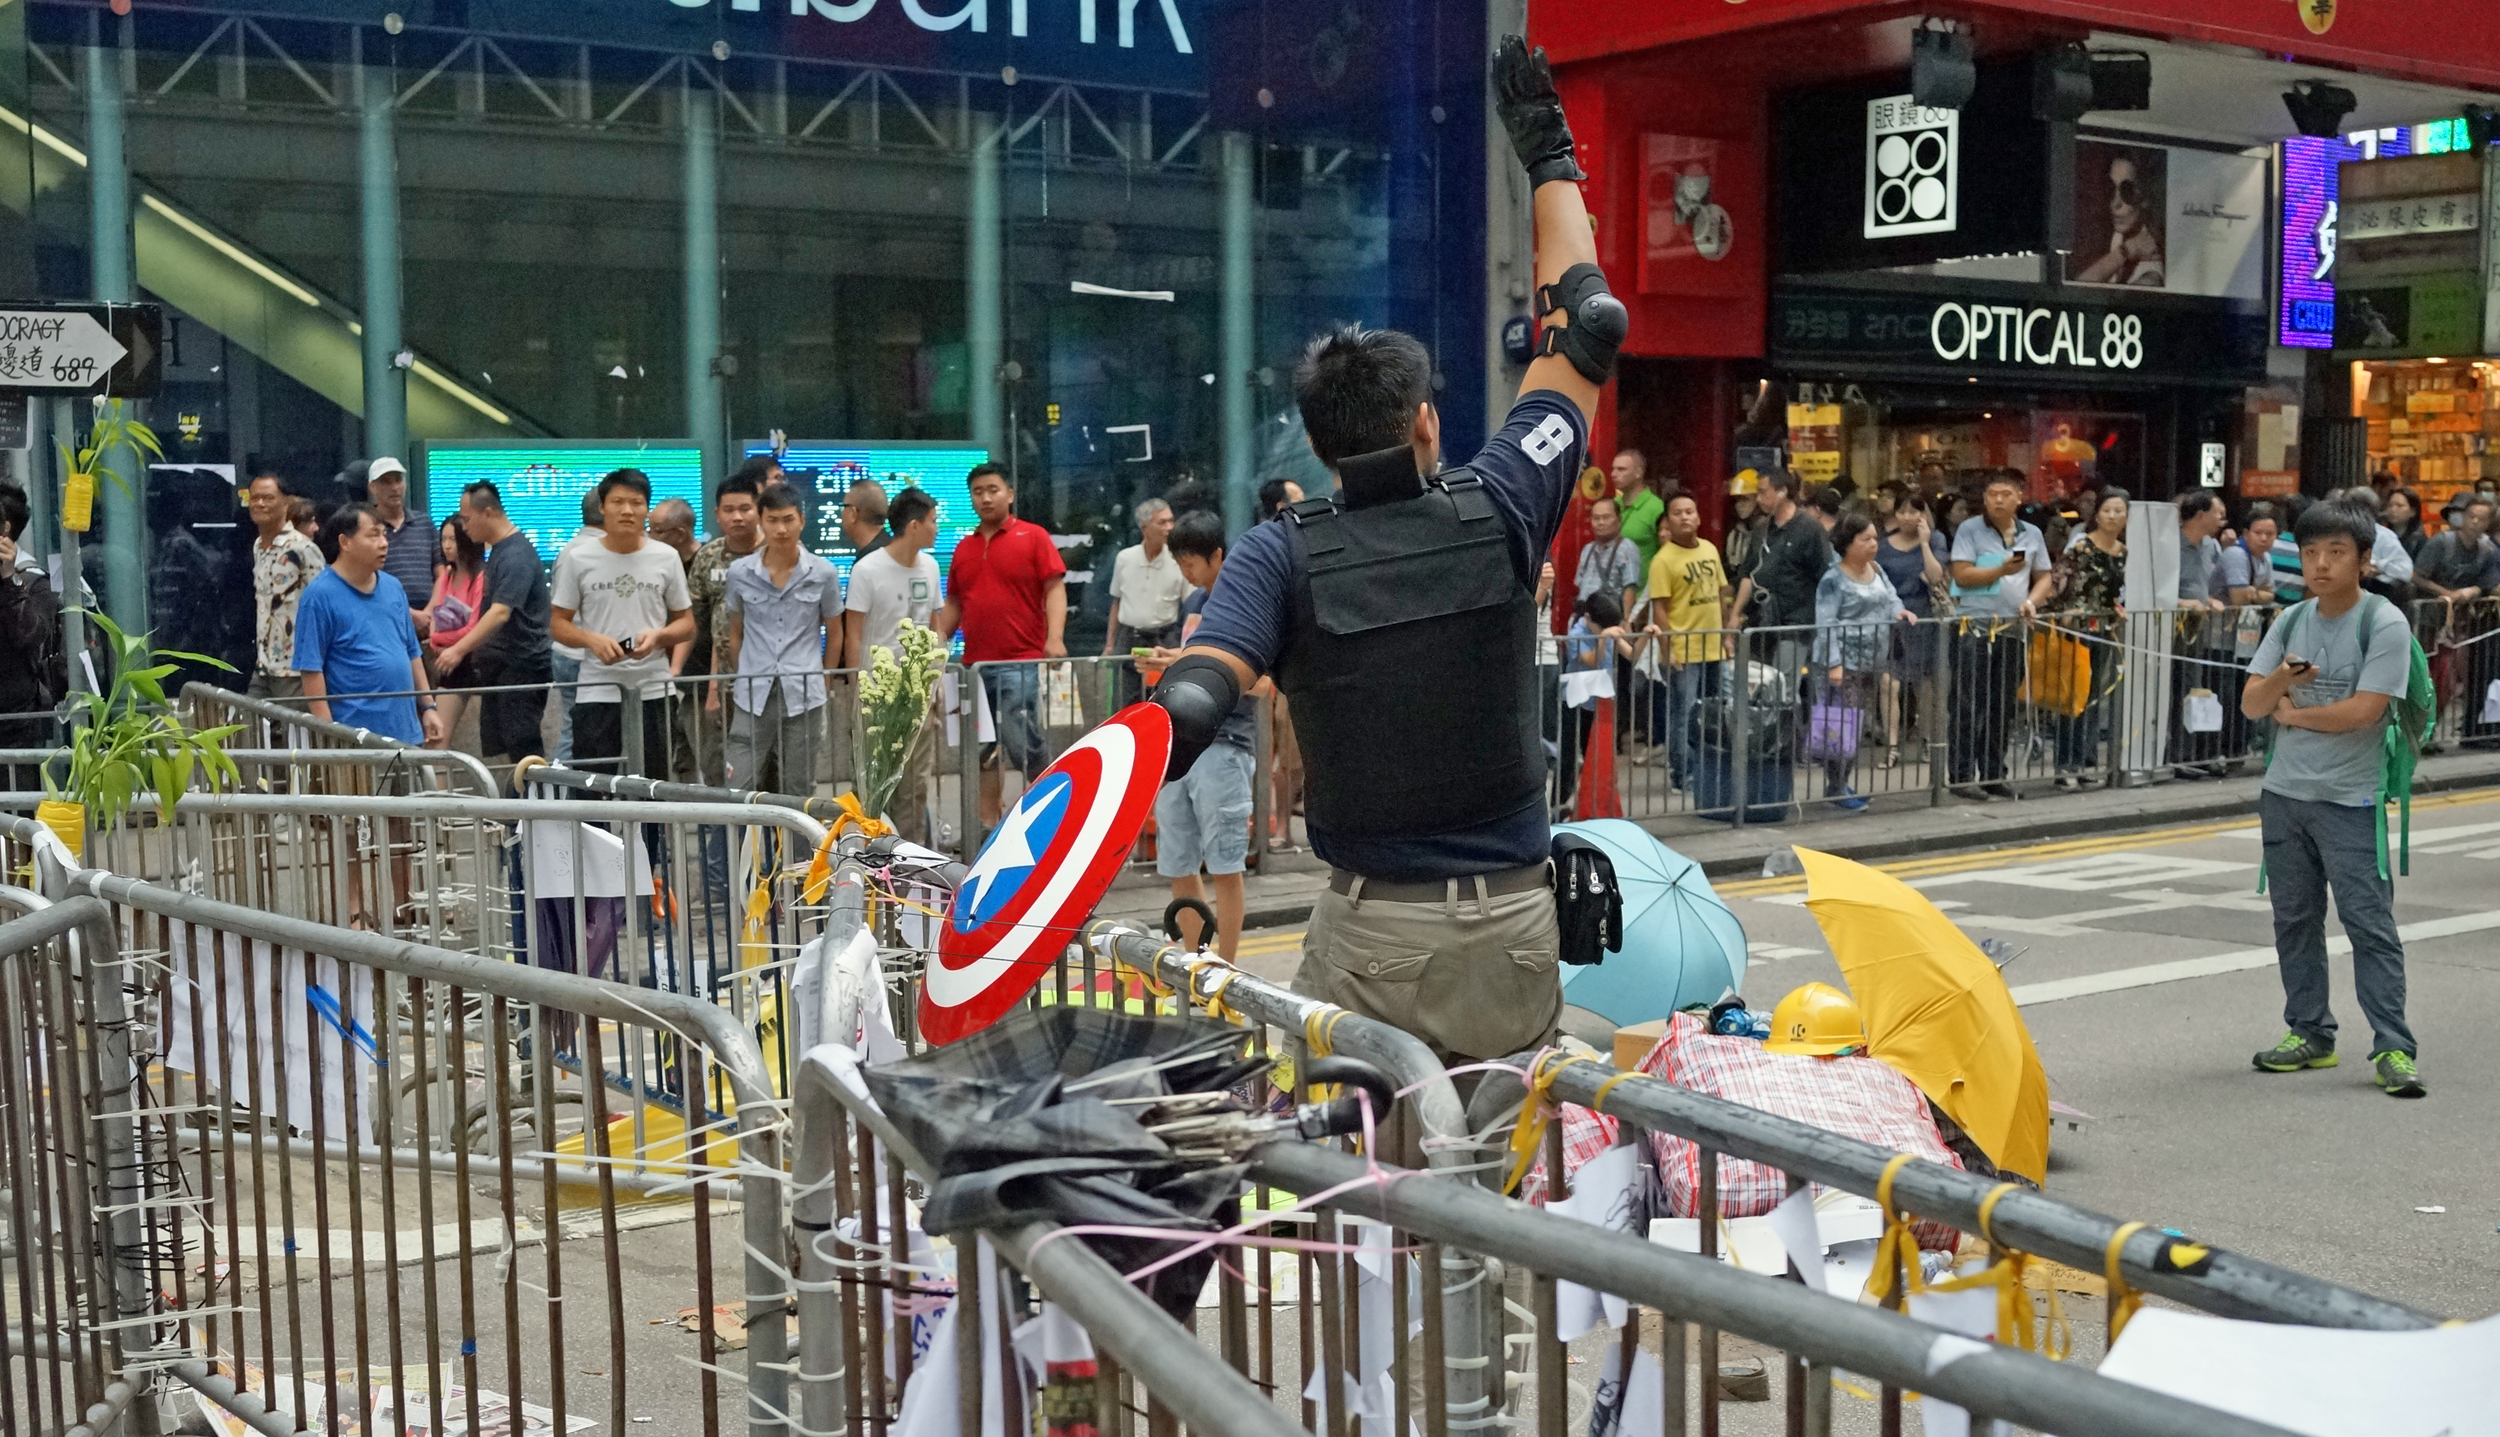 The moron dressed as Captain America inciting riots in Hong Kong